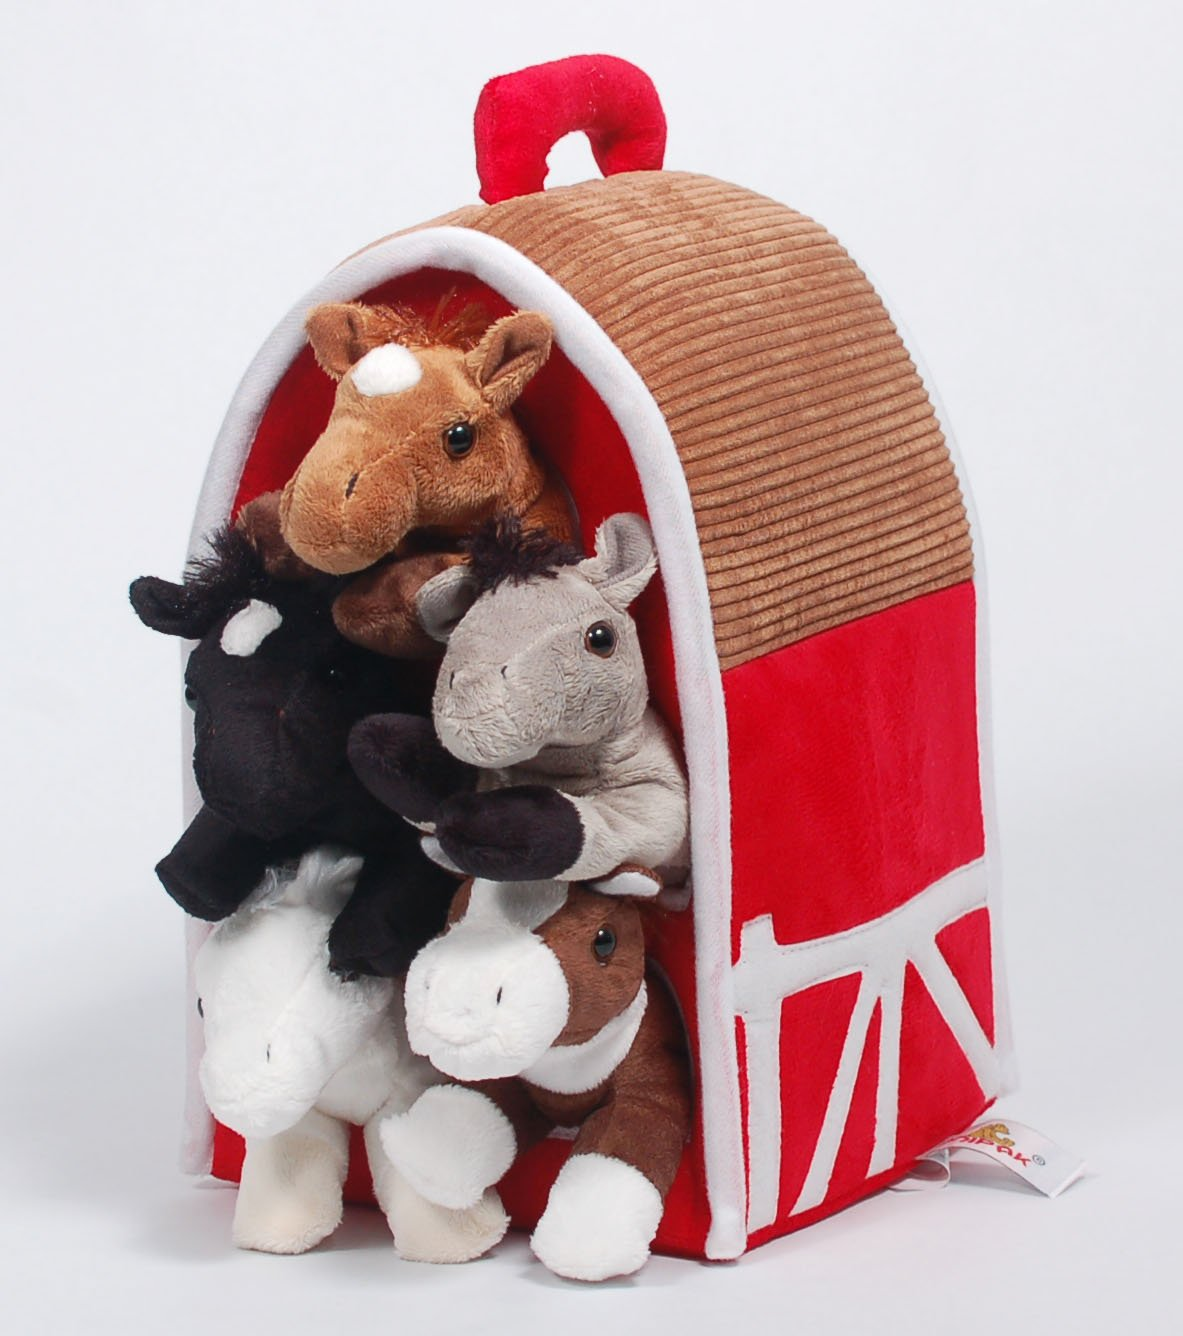 SFS Gifts 12 Red Plush Horse Barn with 5 Stuffed Animal Horses by Unipak and 5 Bonus Horse Figures